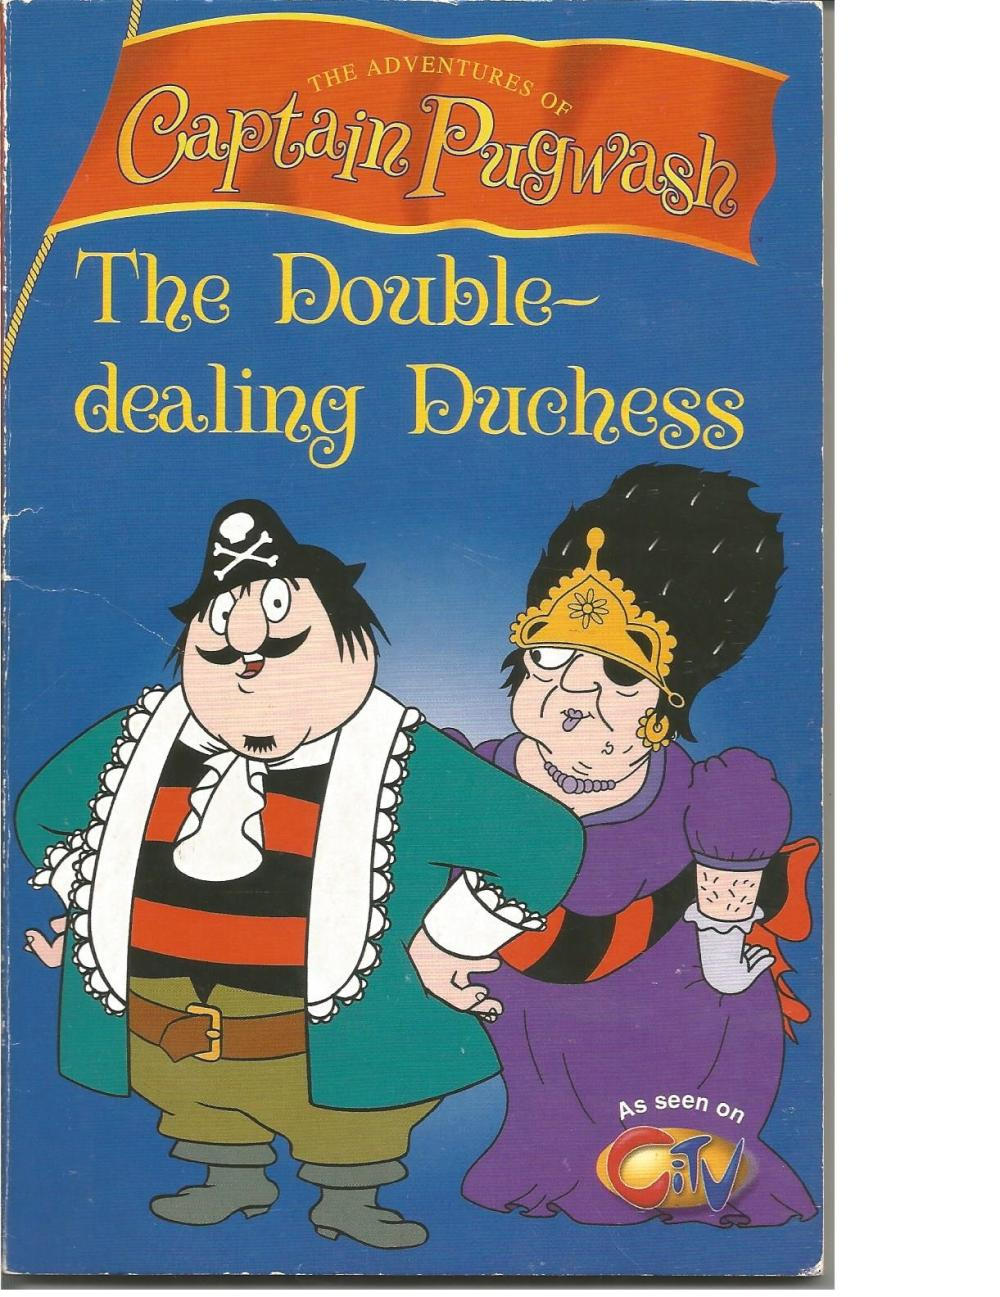 John Ryan Captain Pugwash drawing and autograph to inside page of the book The Double dealing